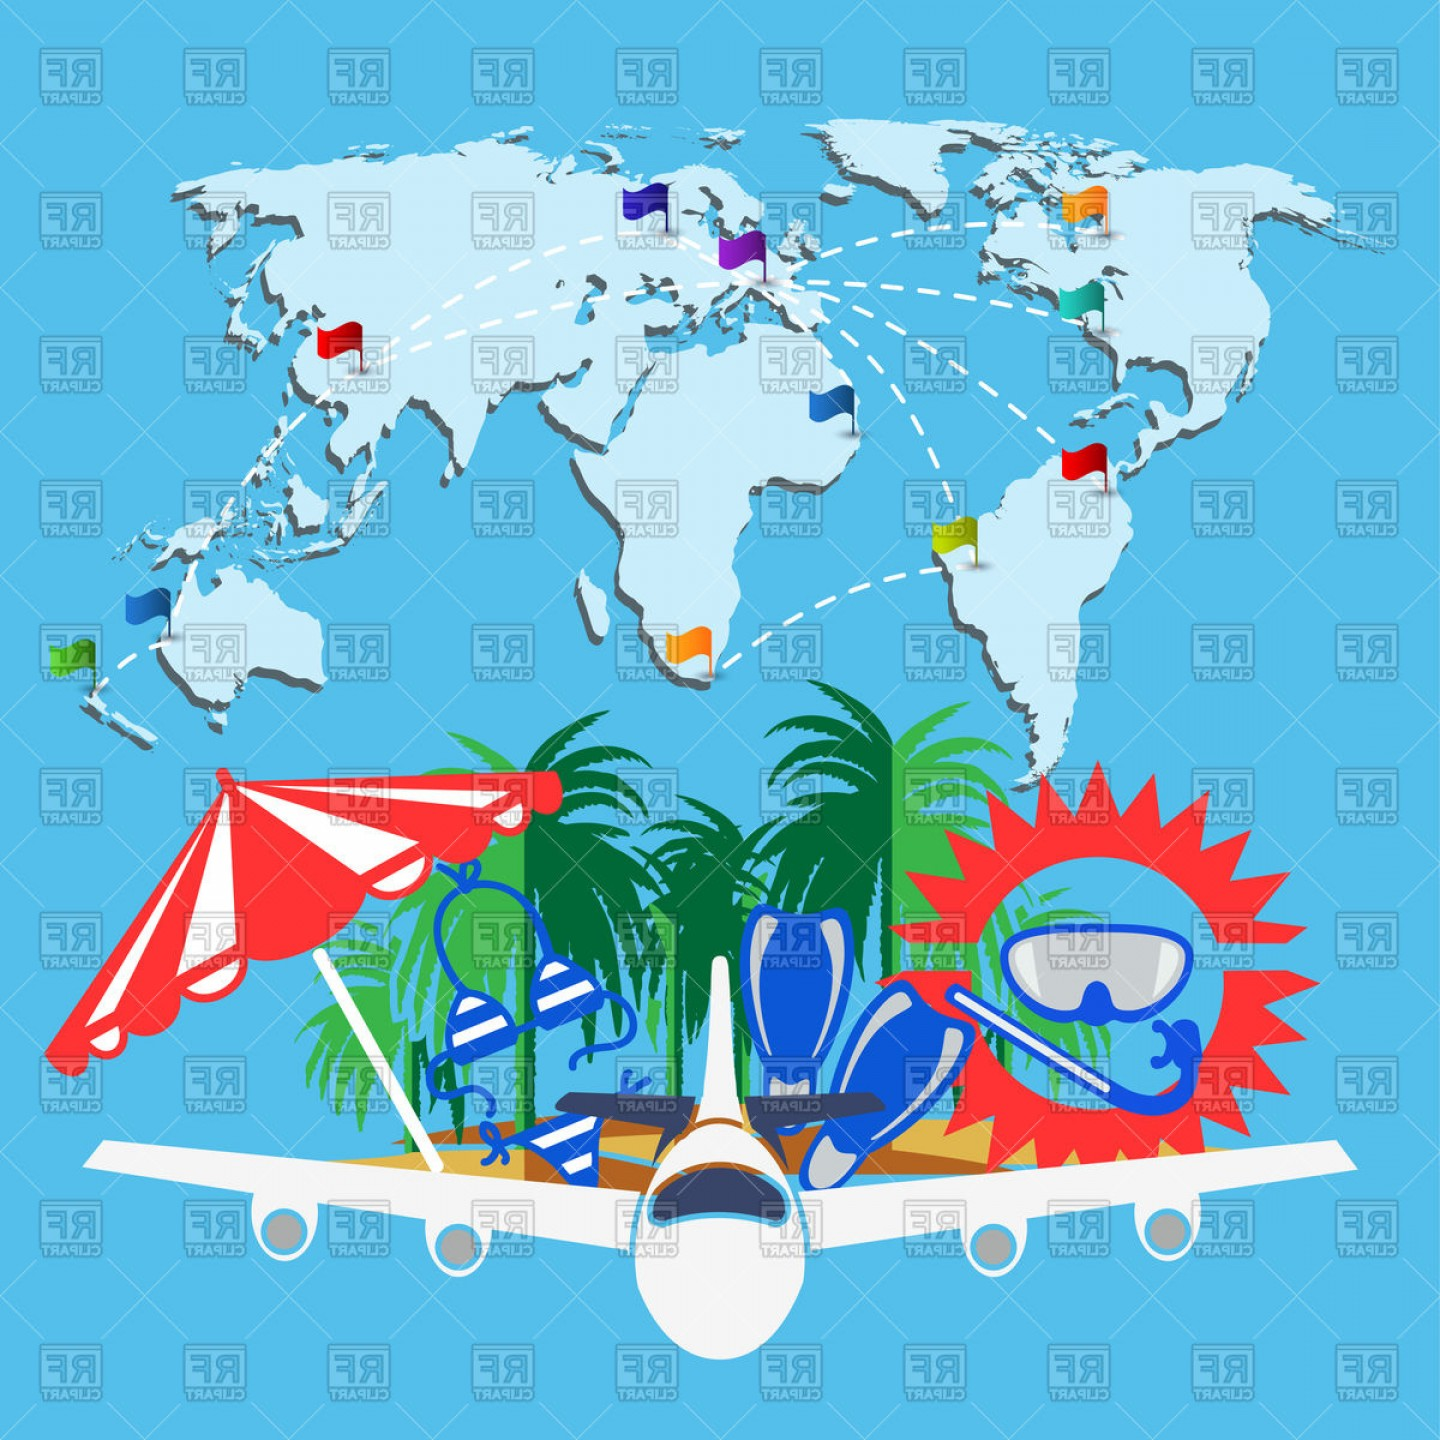 World Travel Map With Airplanes Illustration 25225804.